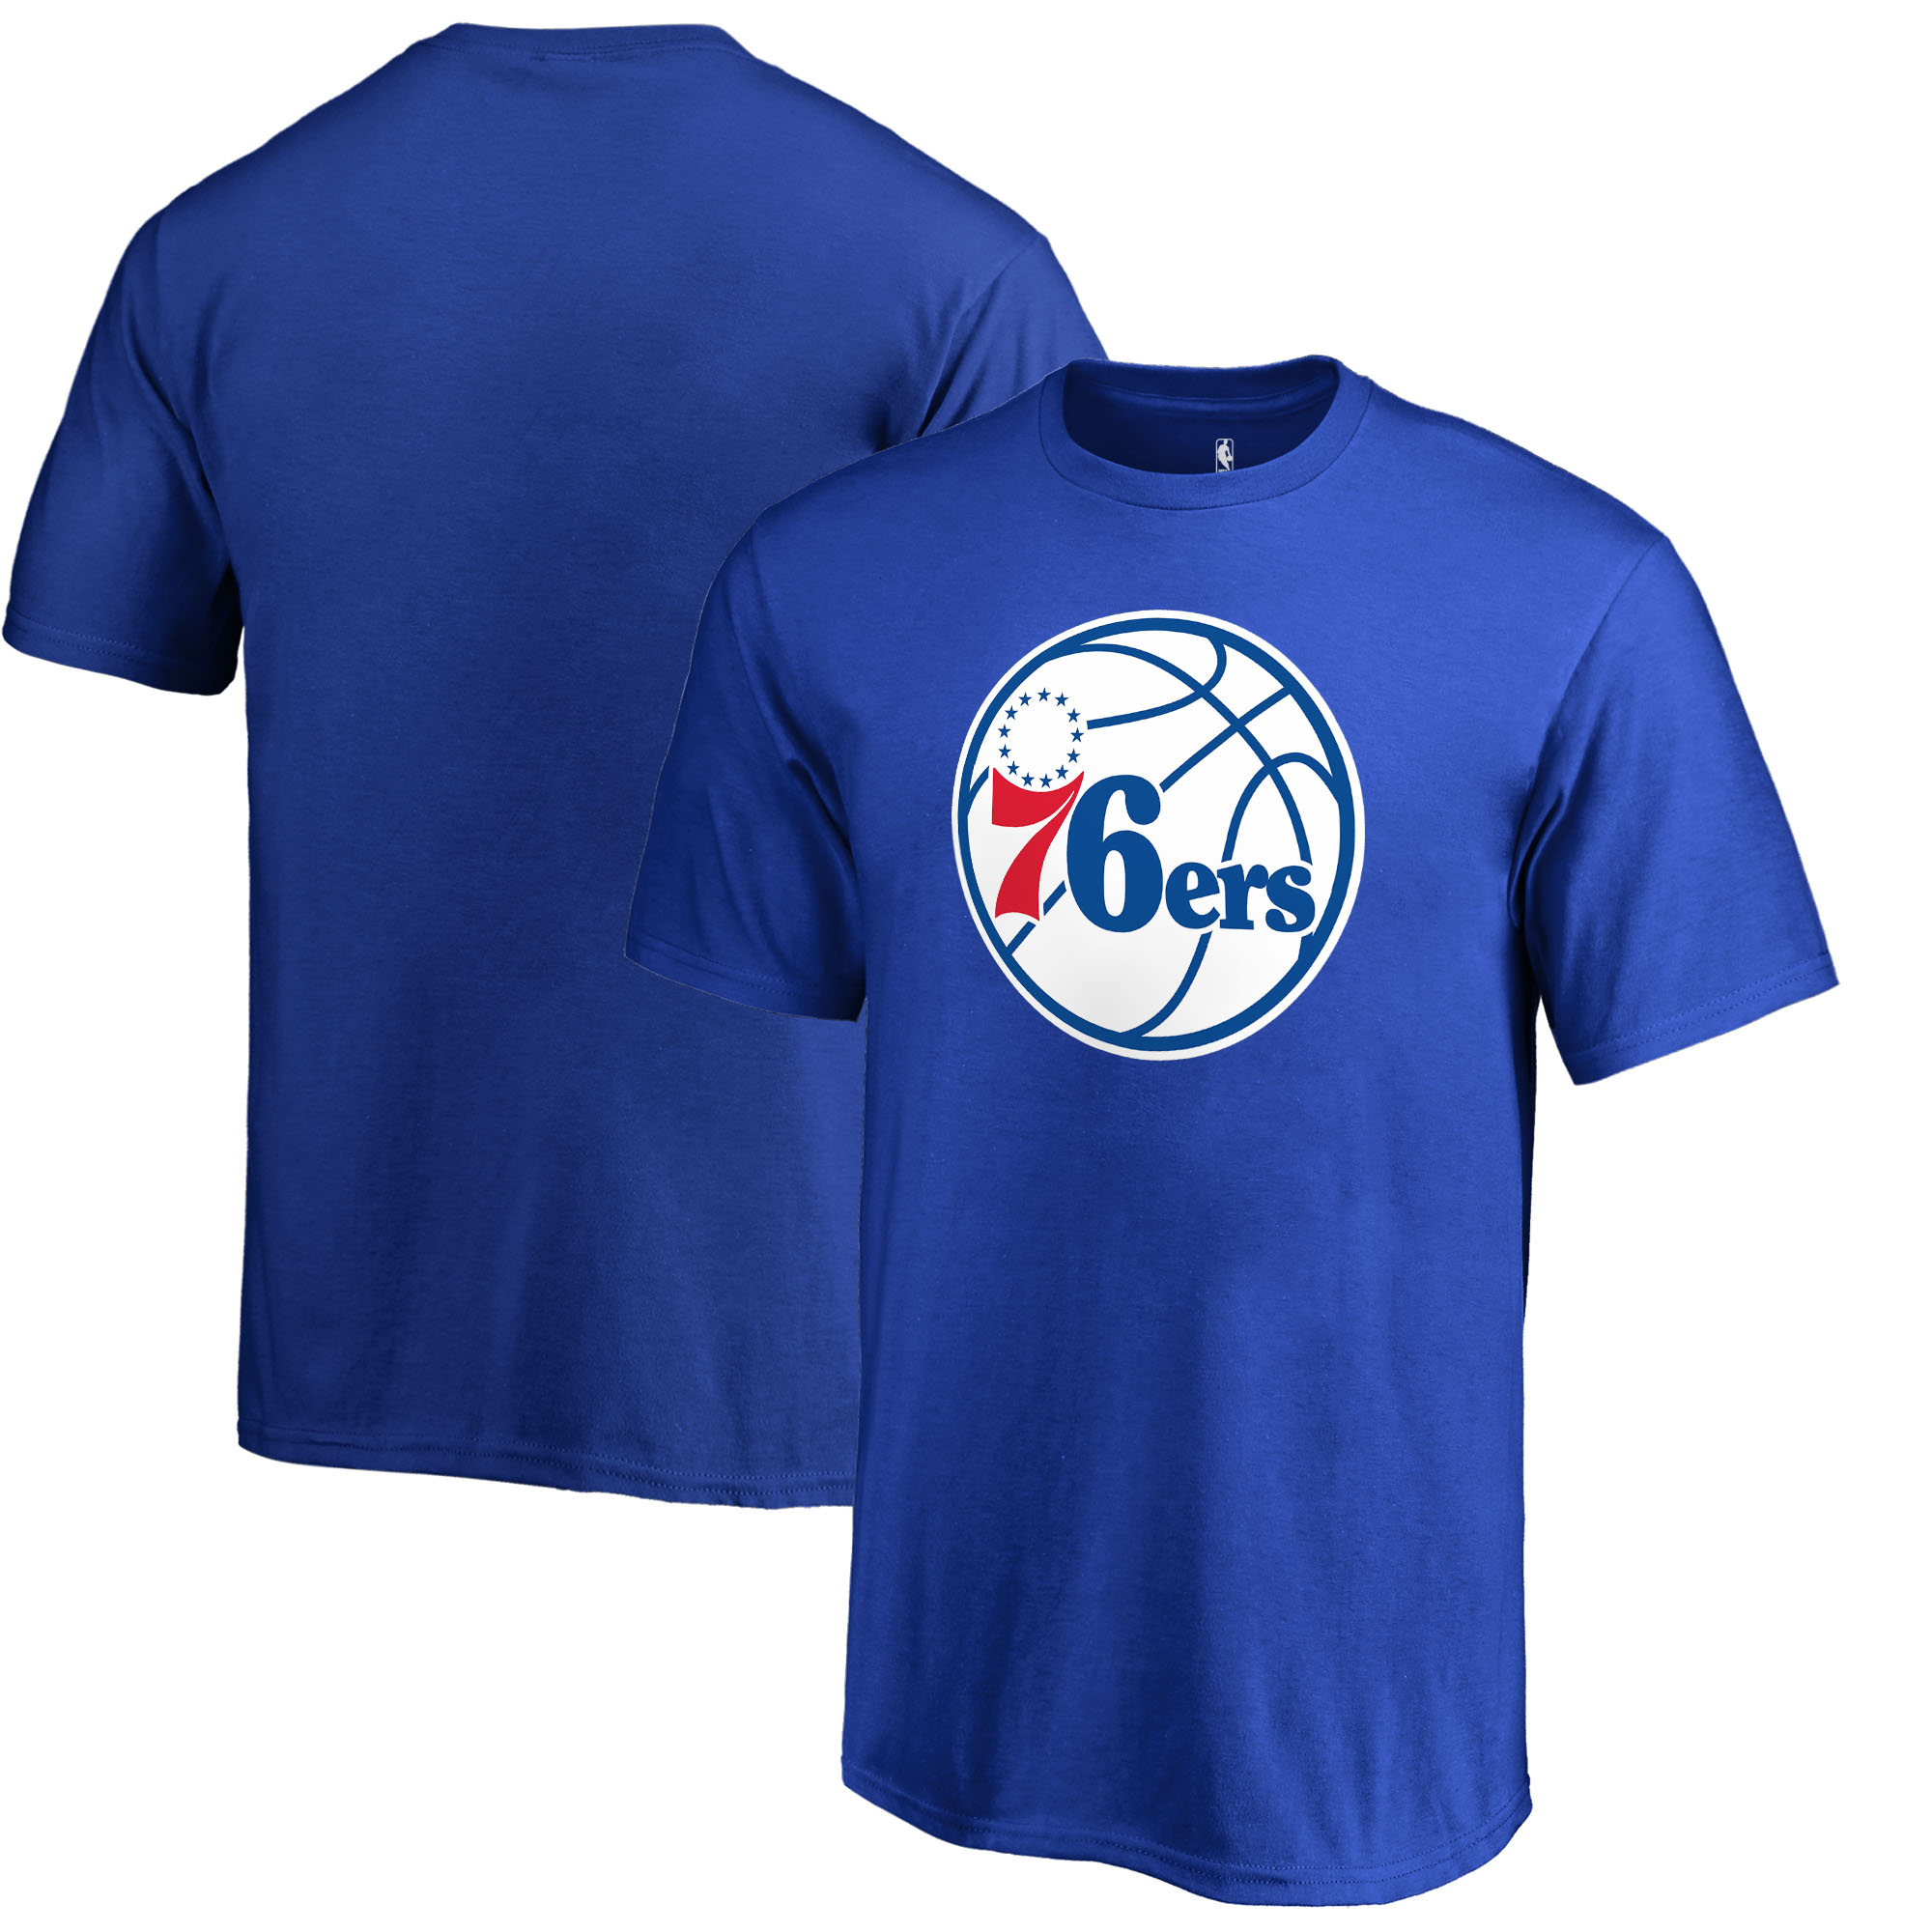 Philadelphia 76ers Fanatics Branded Youth Primary Logo T-Shirt - Royal